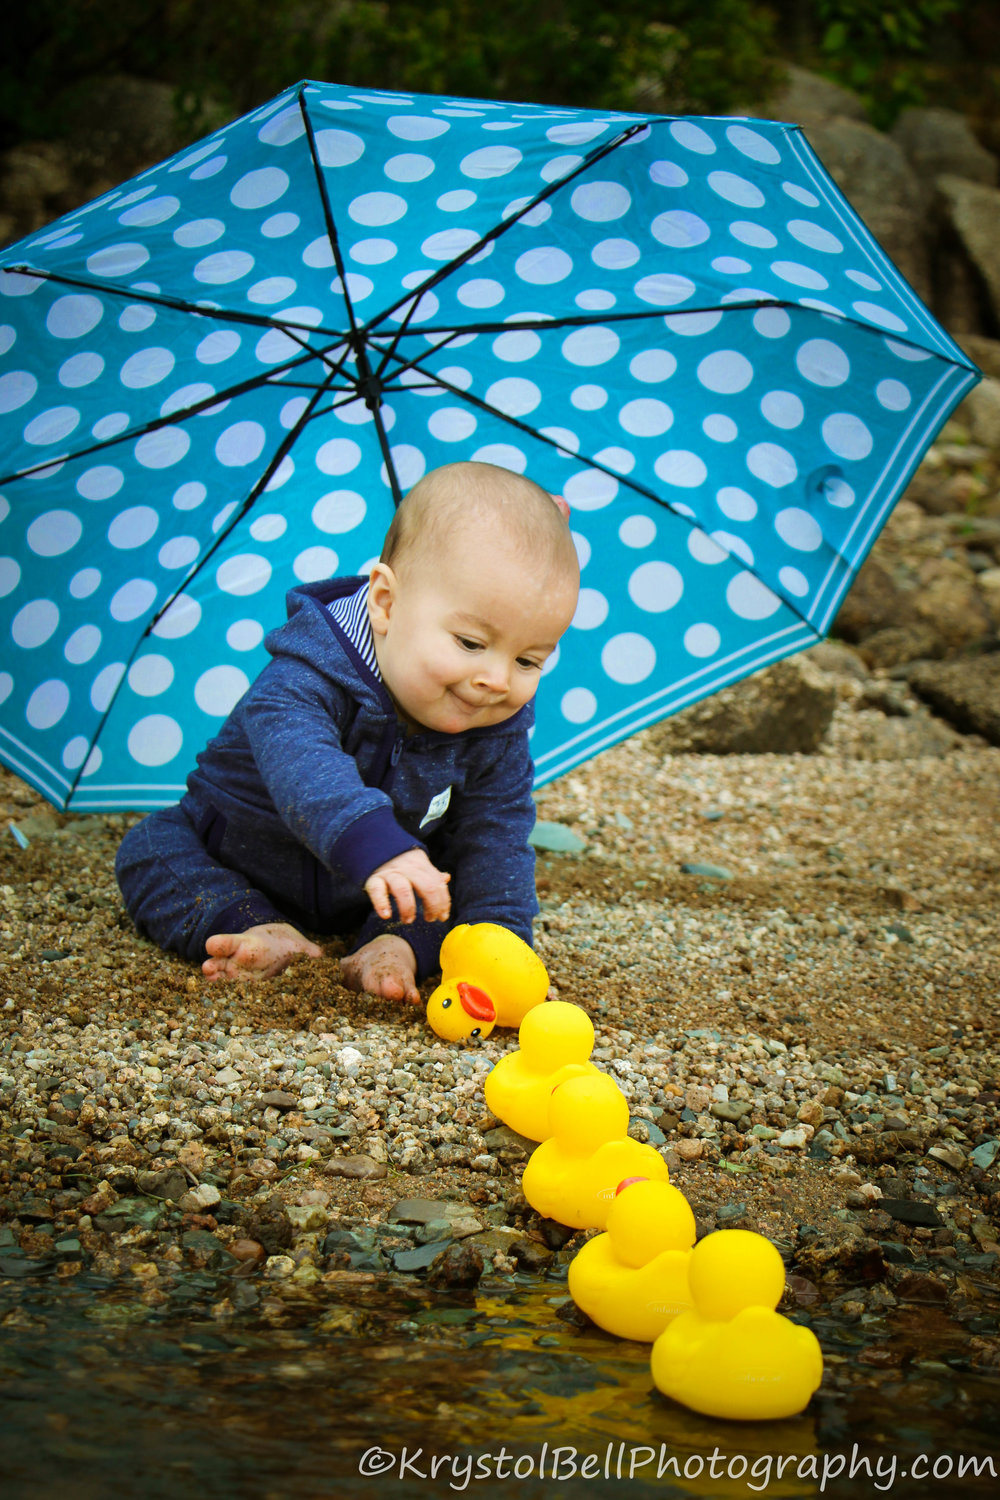 Baby Huddy getting all his ducks in a row... or maybe getting them out of a row is more accurate!  I had been wanting to do a rubber duck/umbrella photo for a while and he did a very cute job of it!